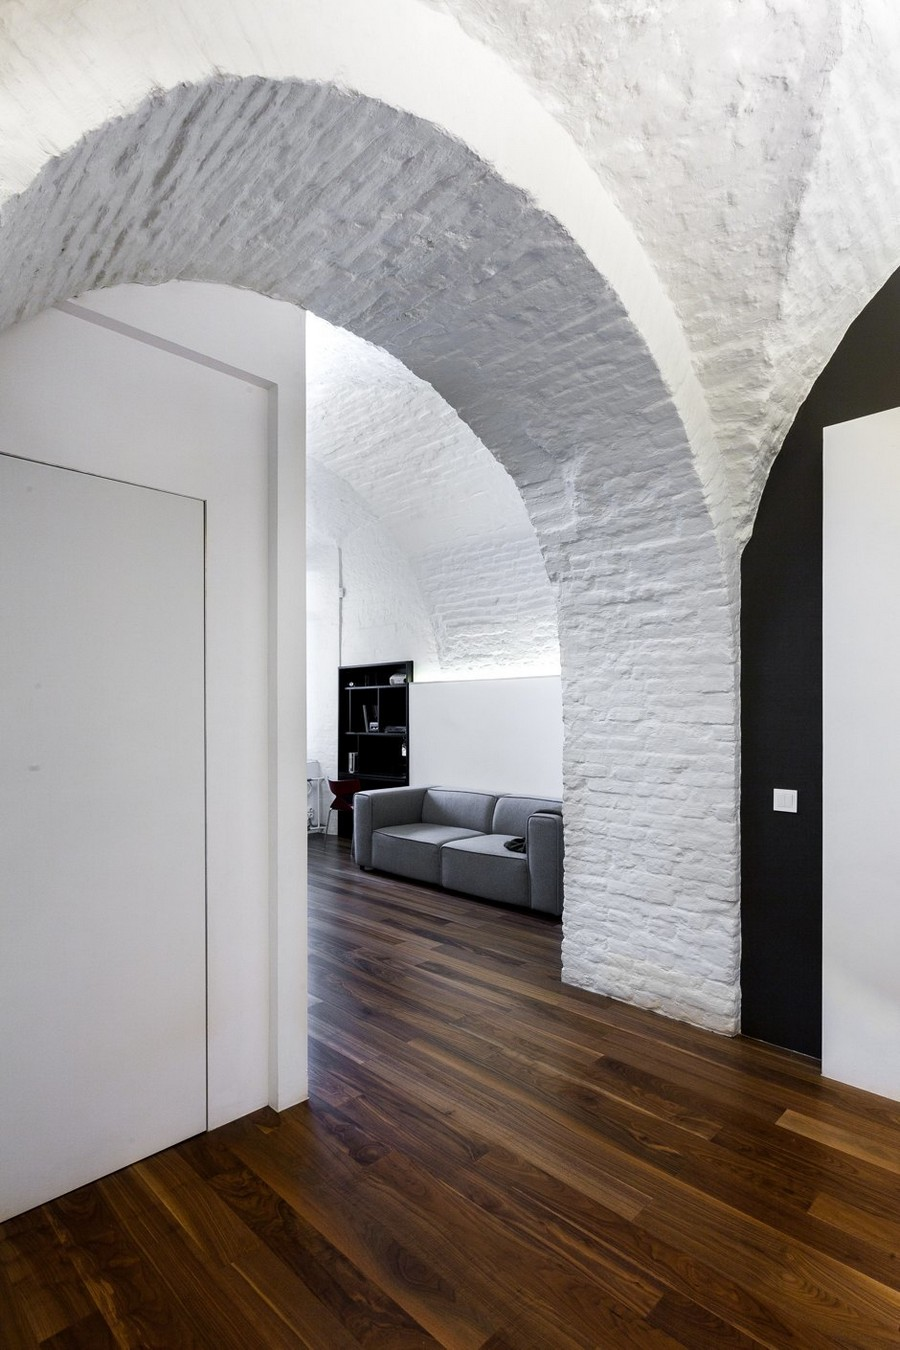 Ascetic Minimalist Apartment With Arched Ceilings